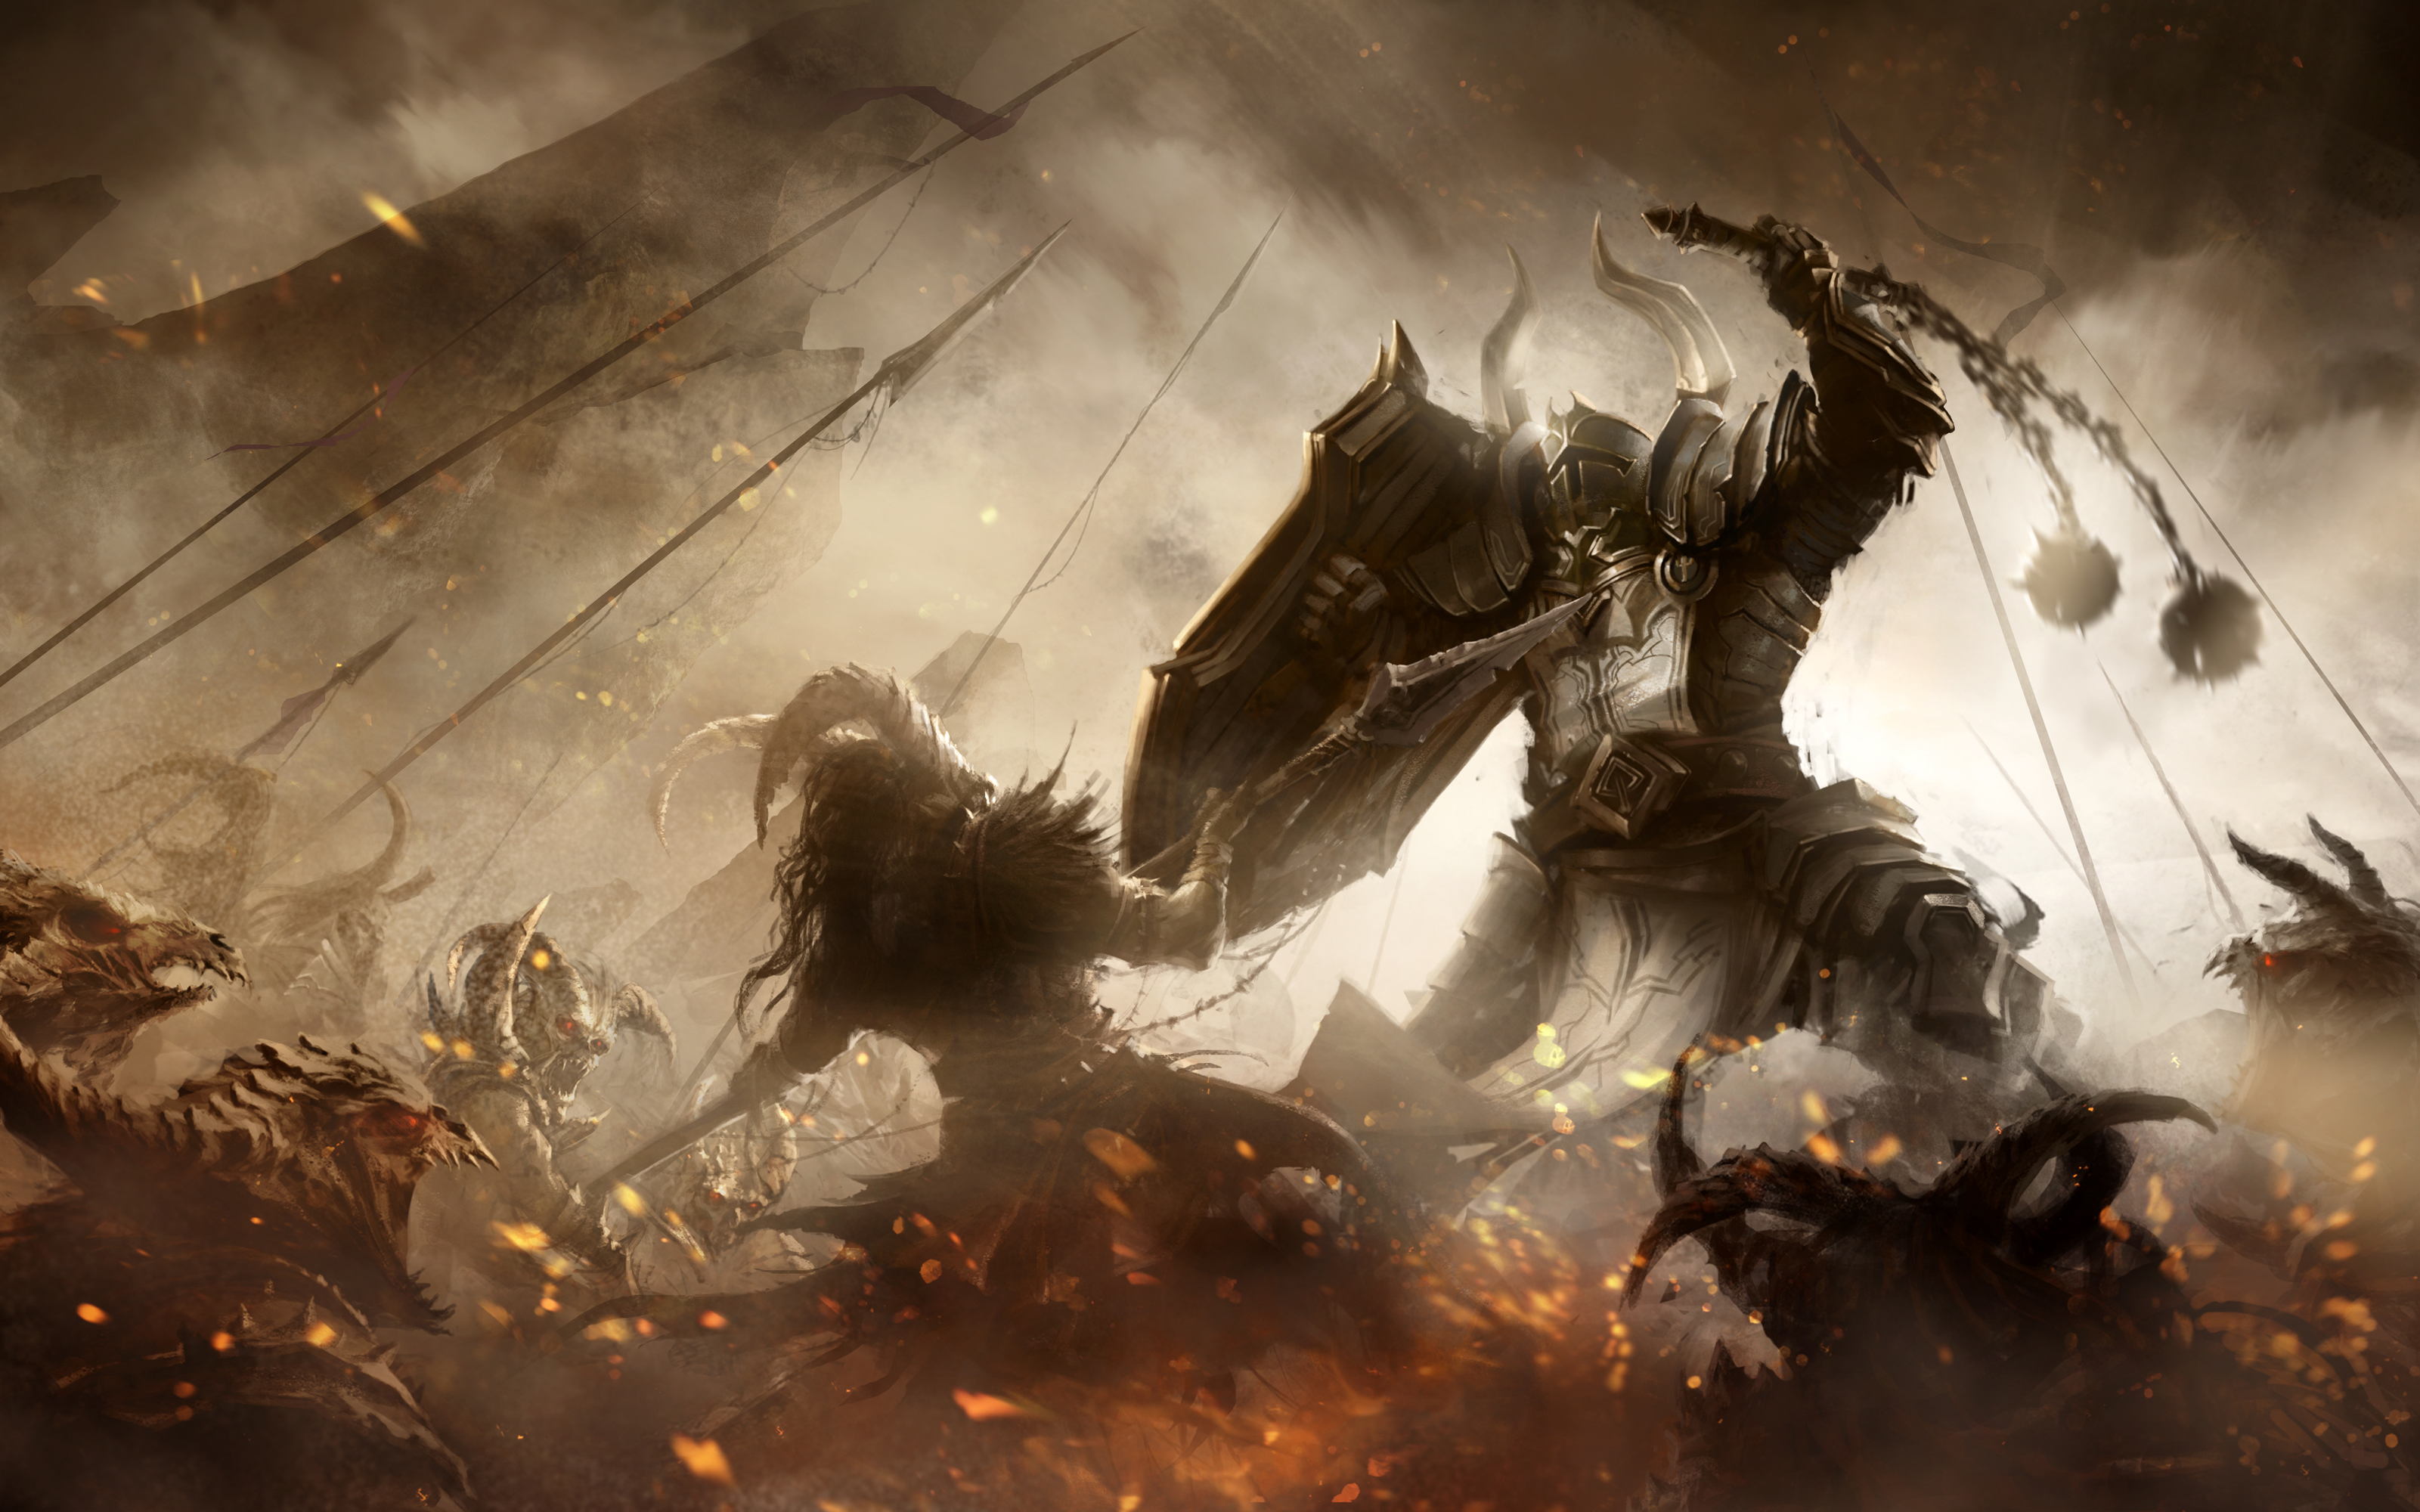 Diablo 3 Fanart - Crusader by m-hugo